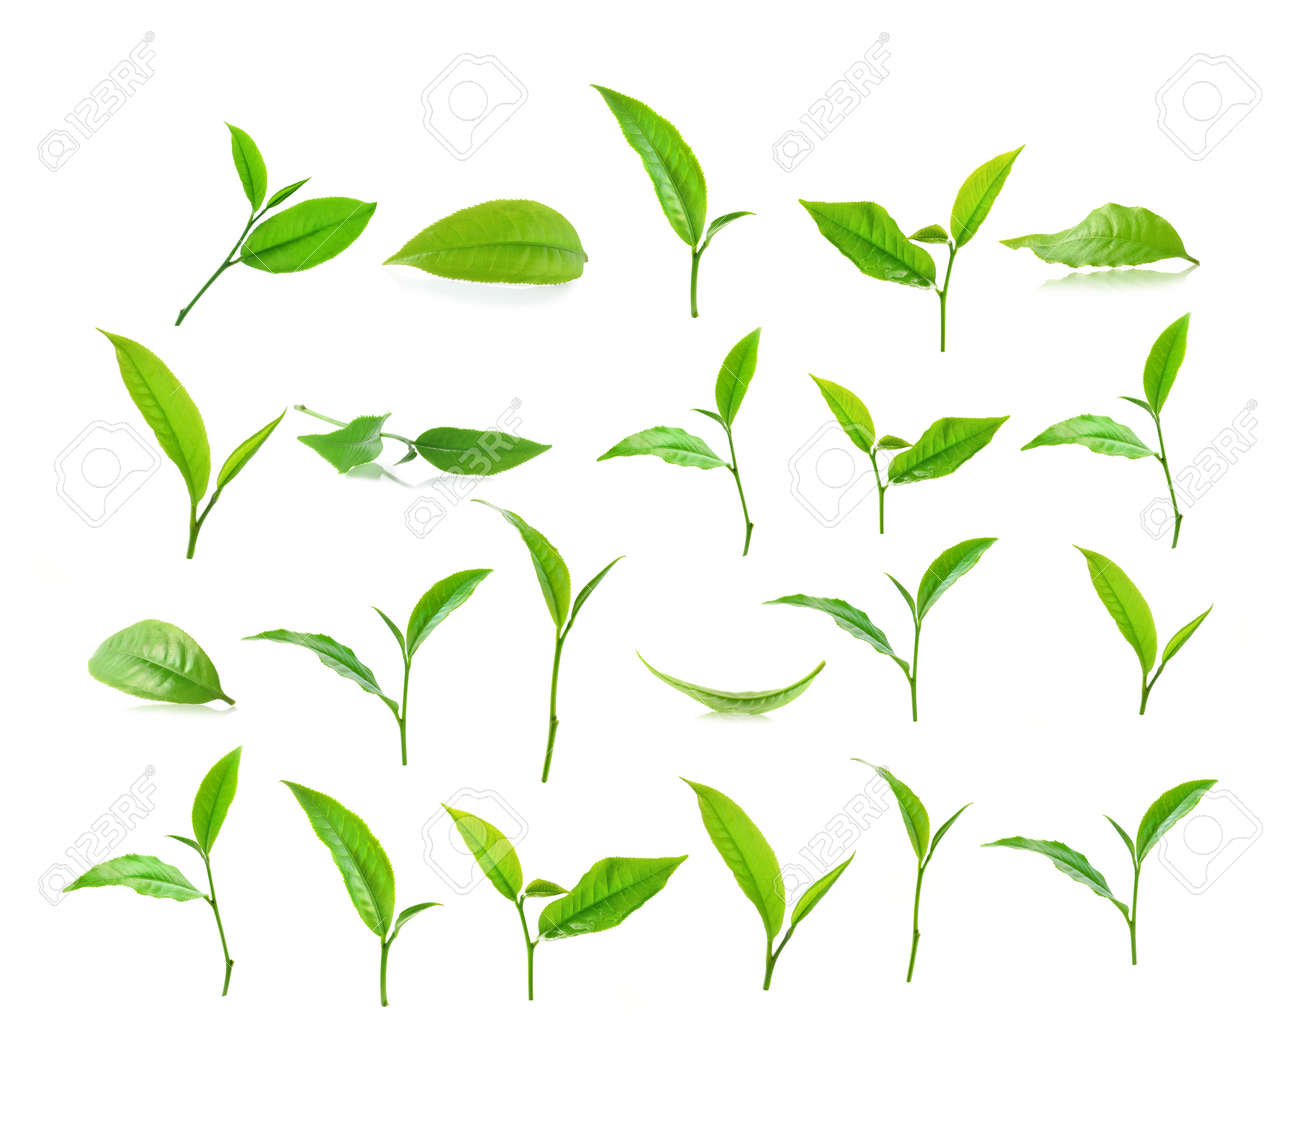 Green tea leaf isolated on white background stock photo picture green tea leaf isolated on white background stock photo 38922055 thecheapjerseys Image collections